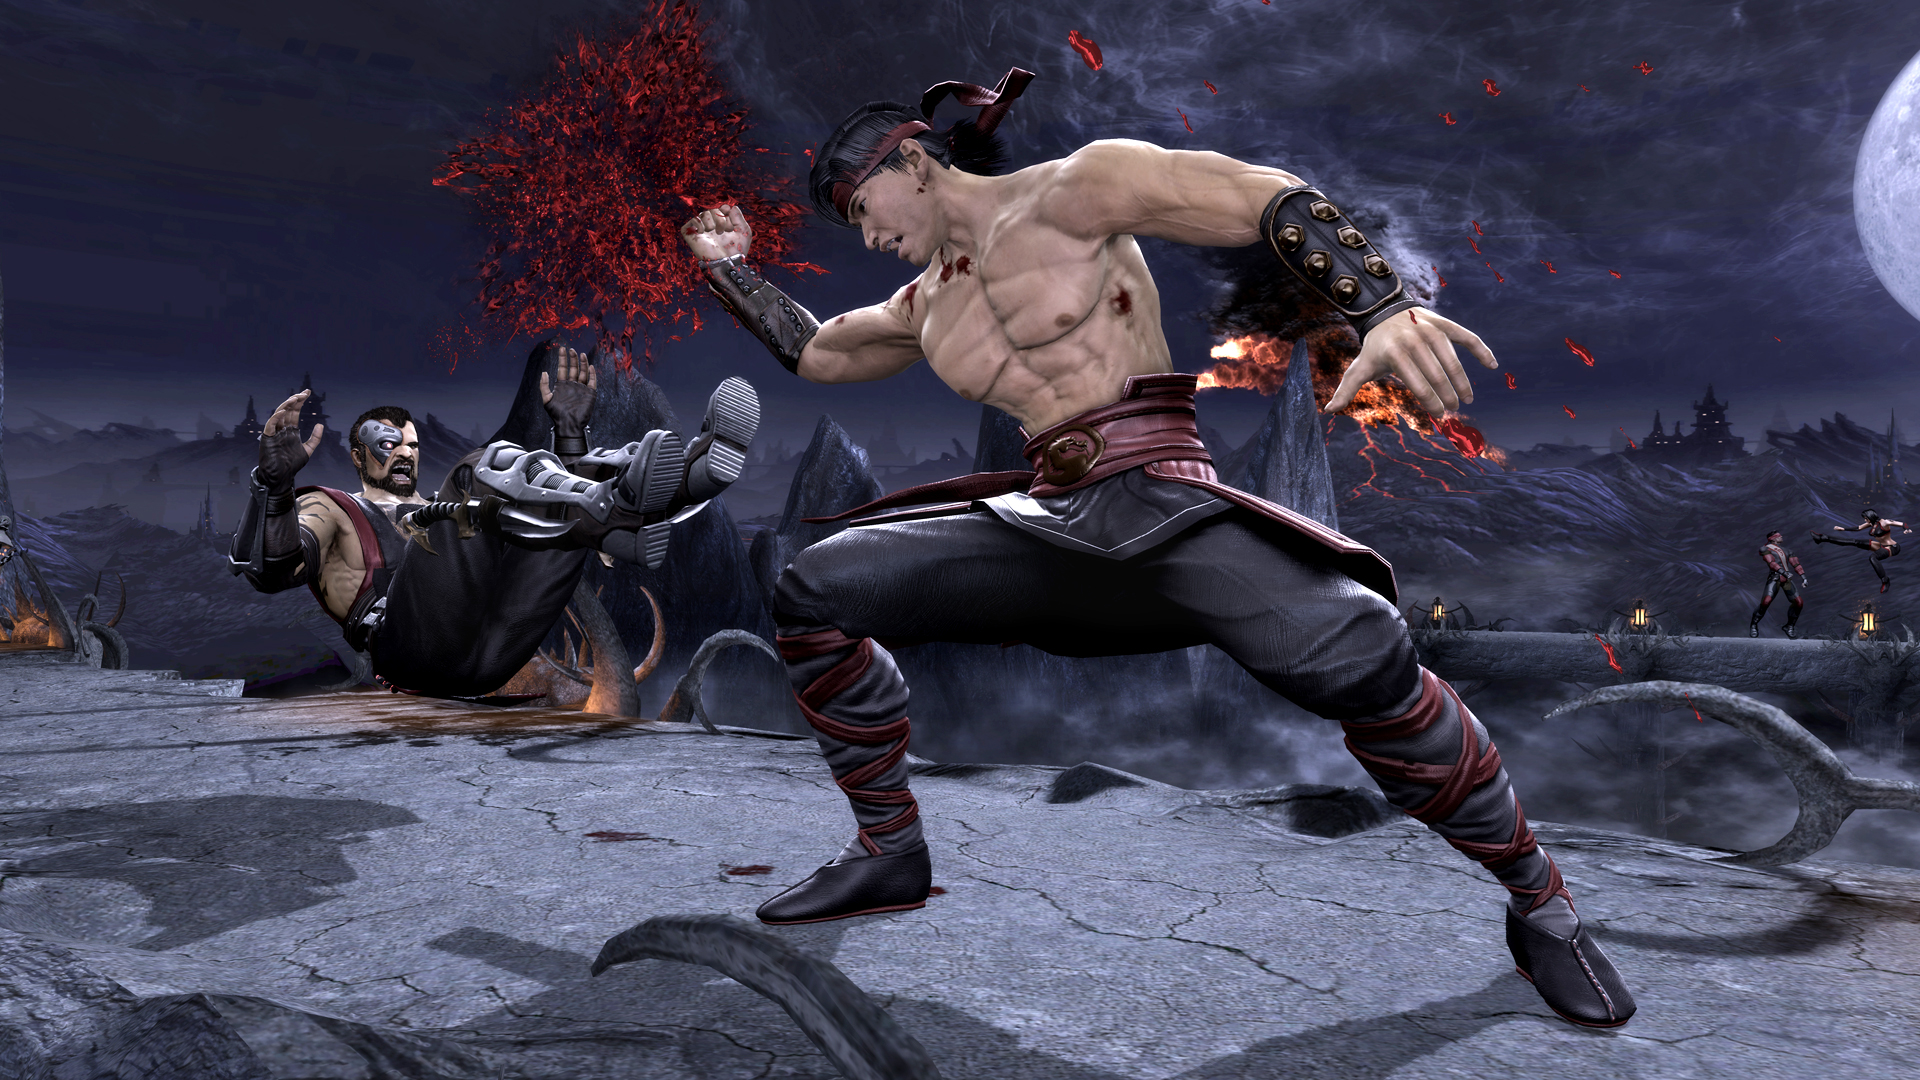 Mortal Kombat 9 - TFG Review / Artwork Gallery